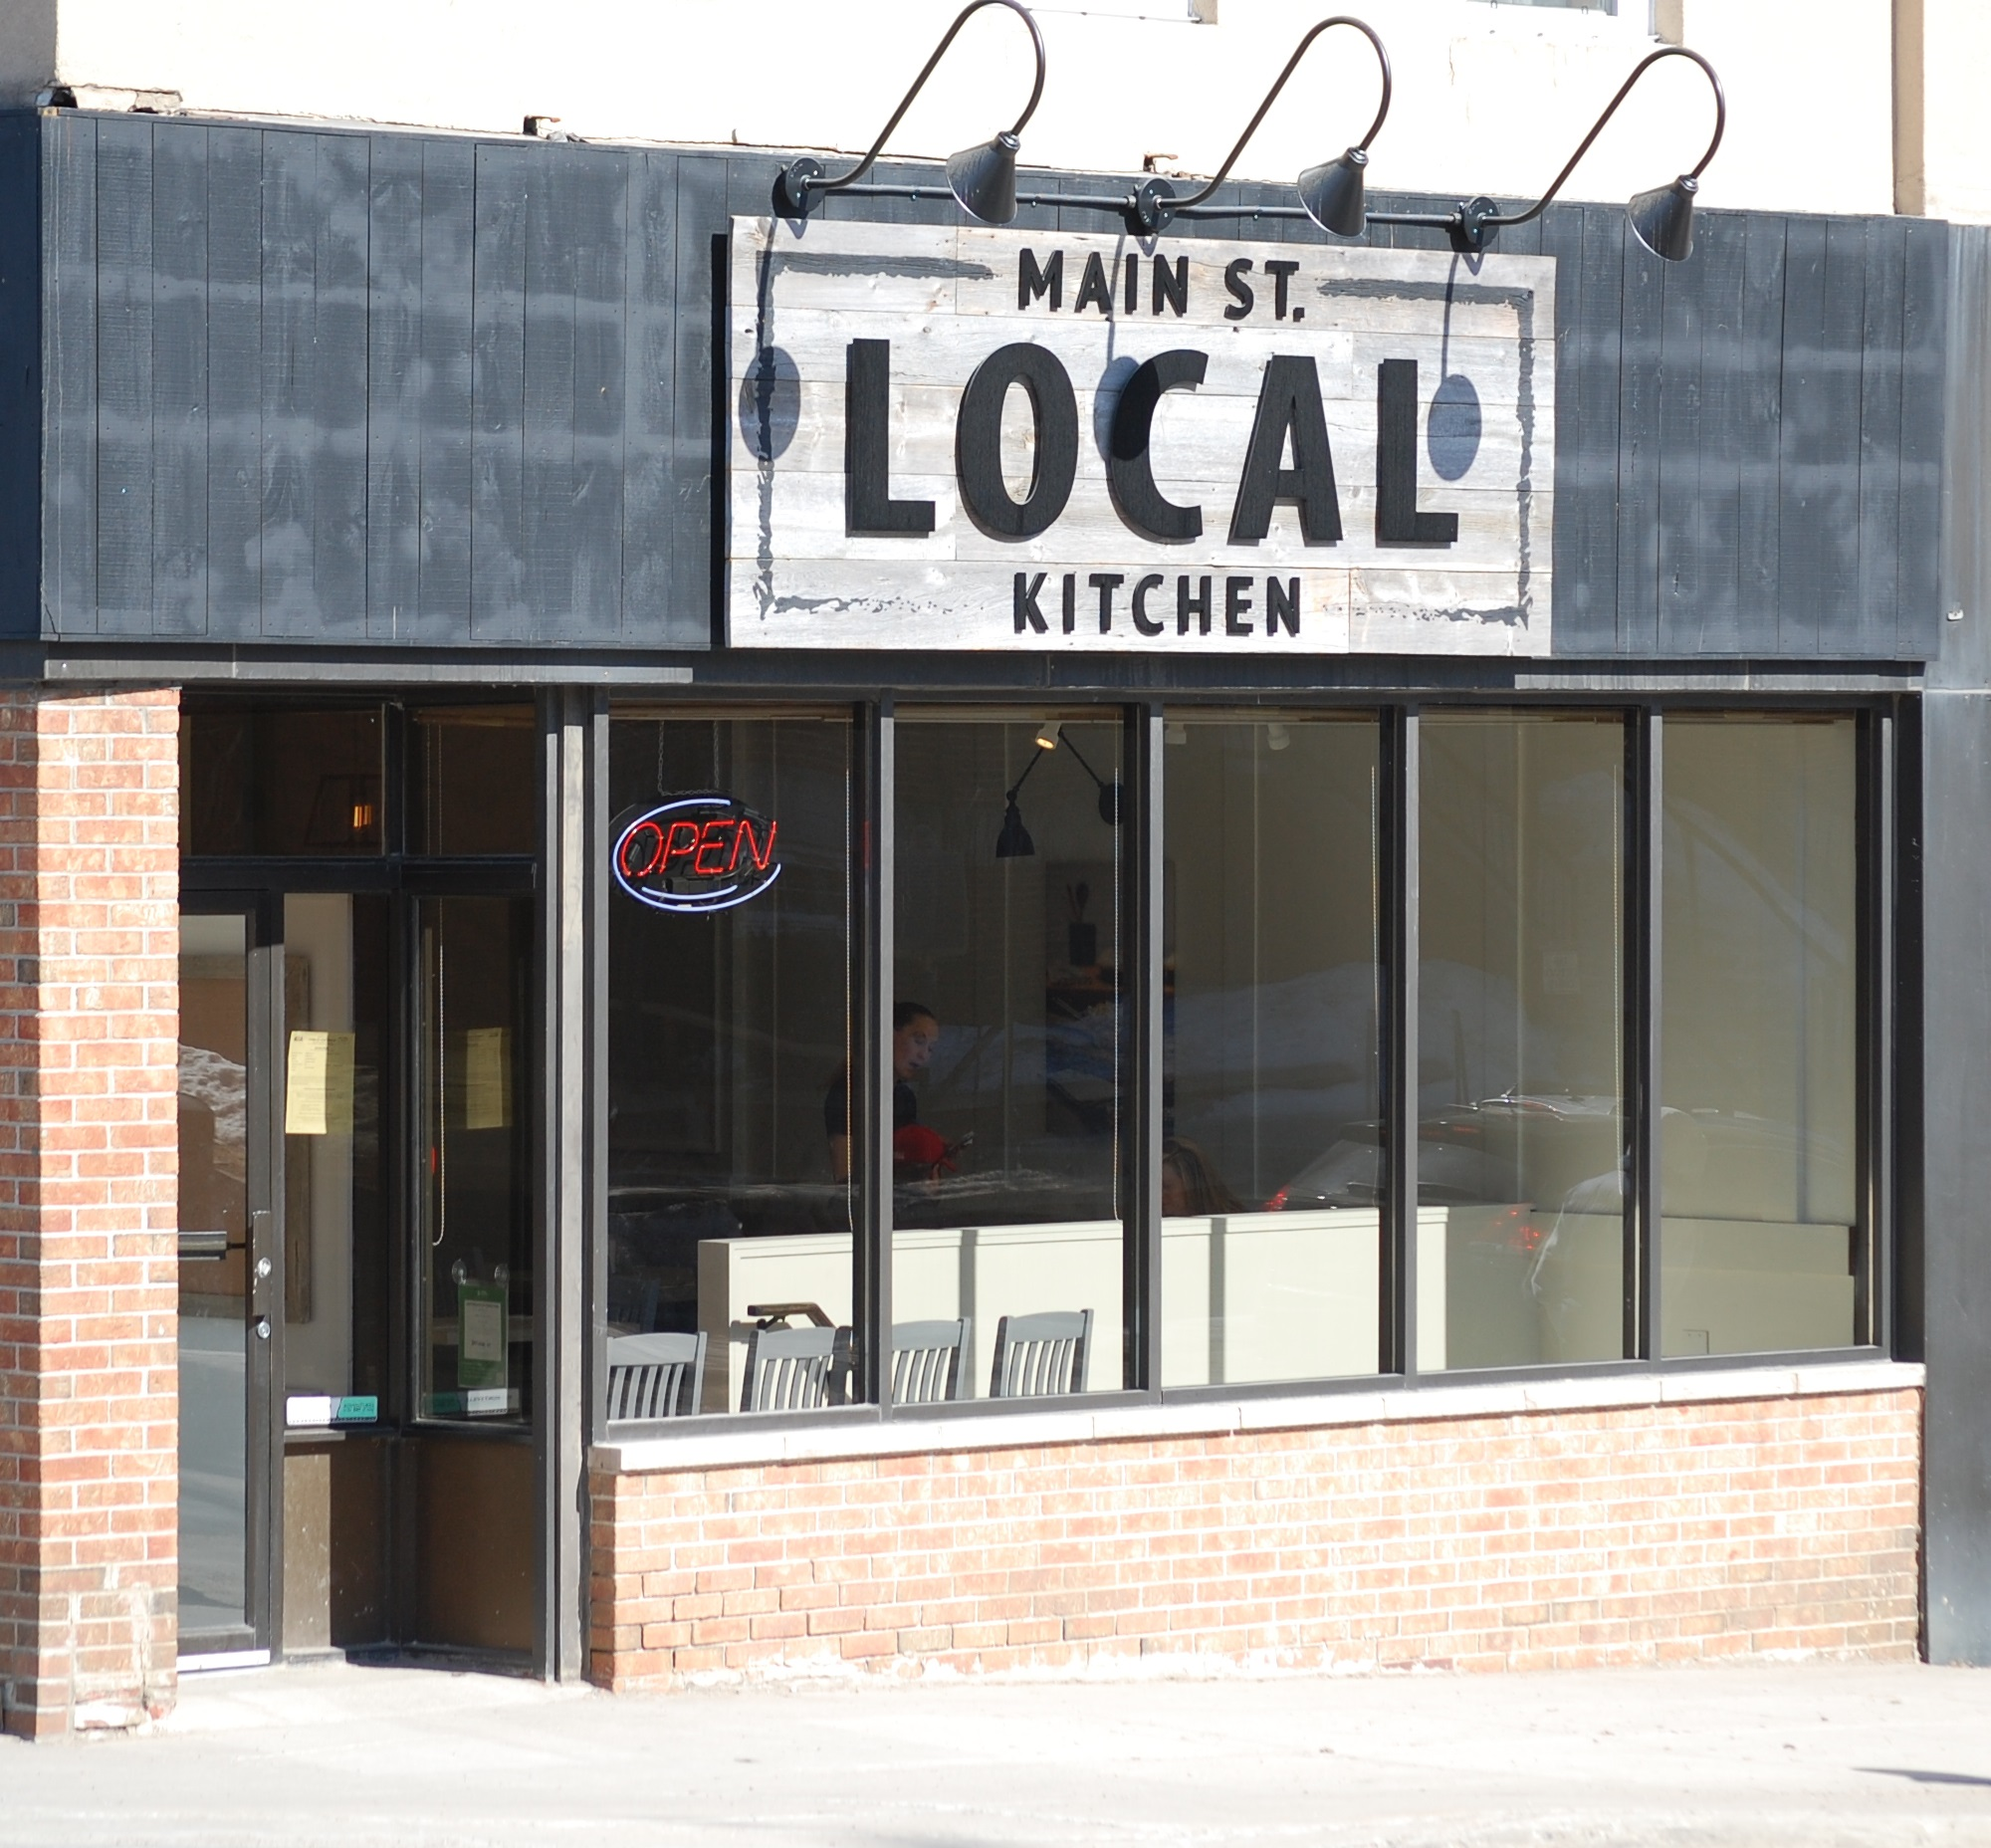 Local Kitchen: Main St. Local Kitchen Serves Up Local Fare With Love